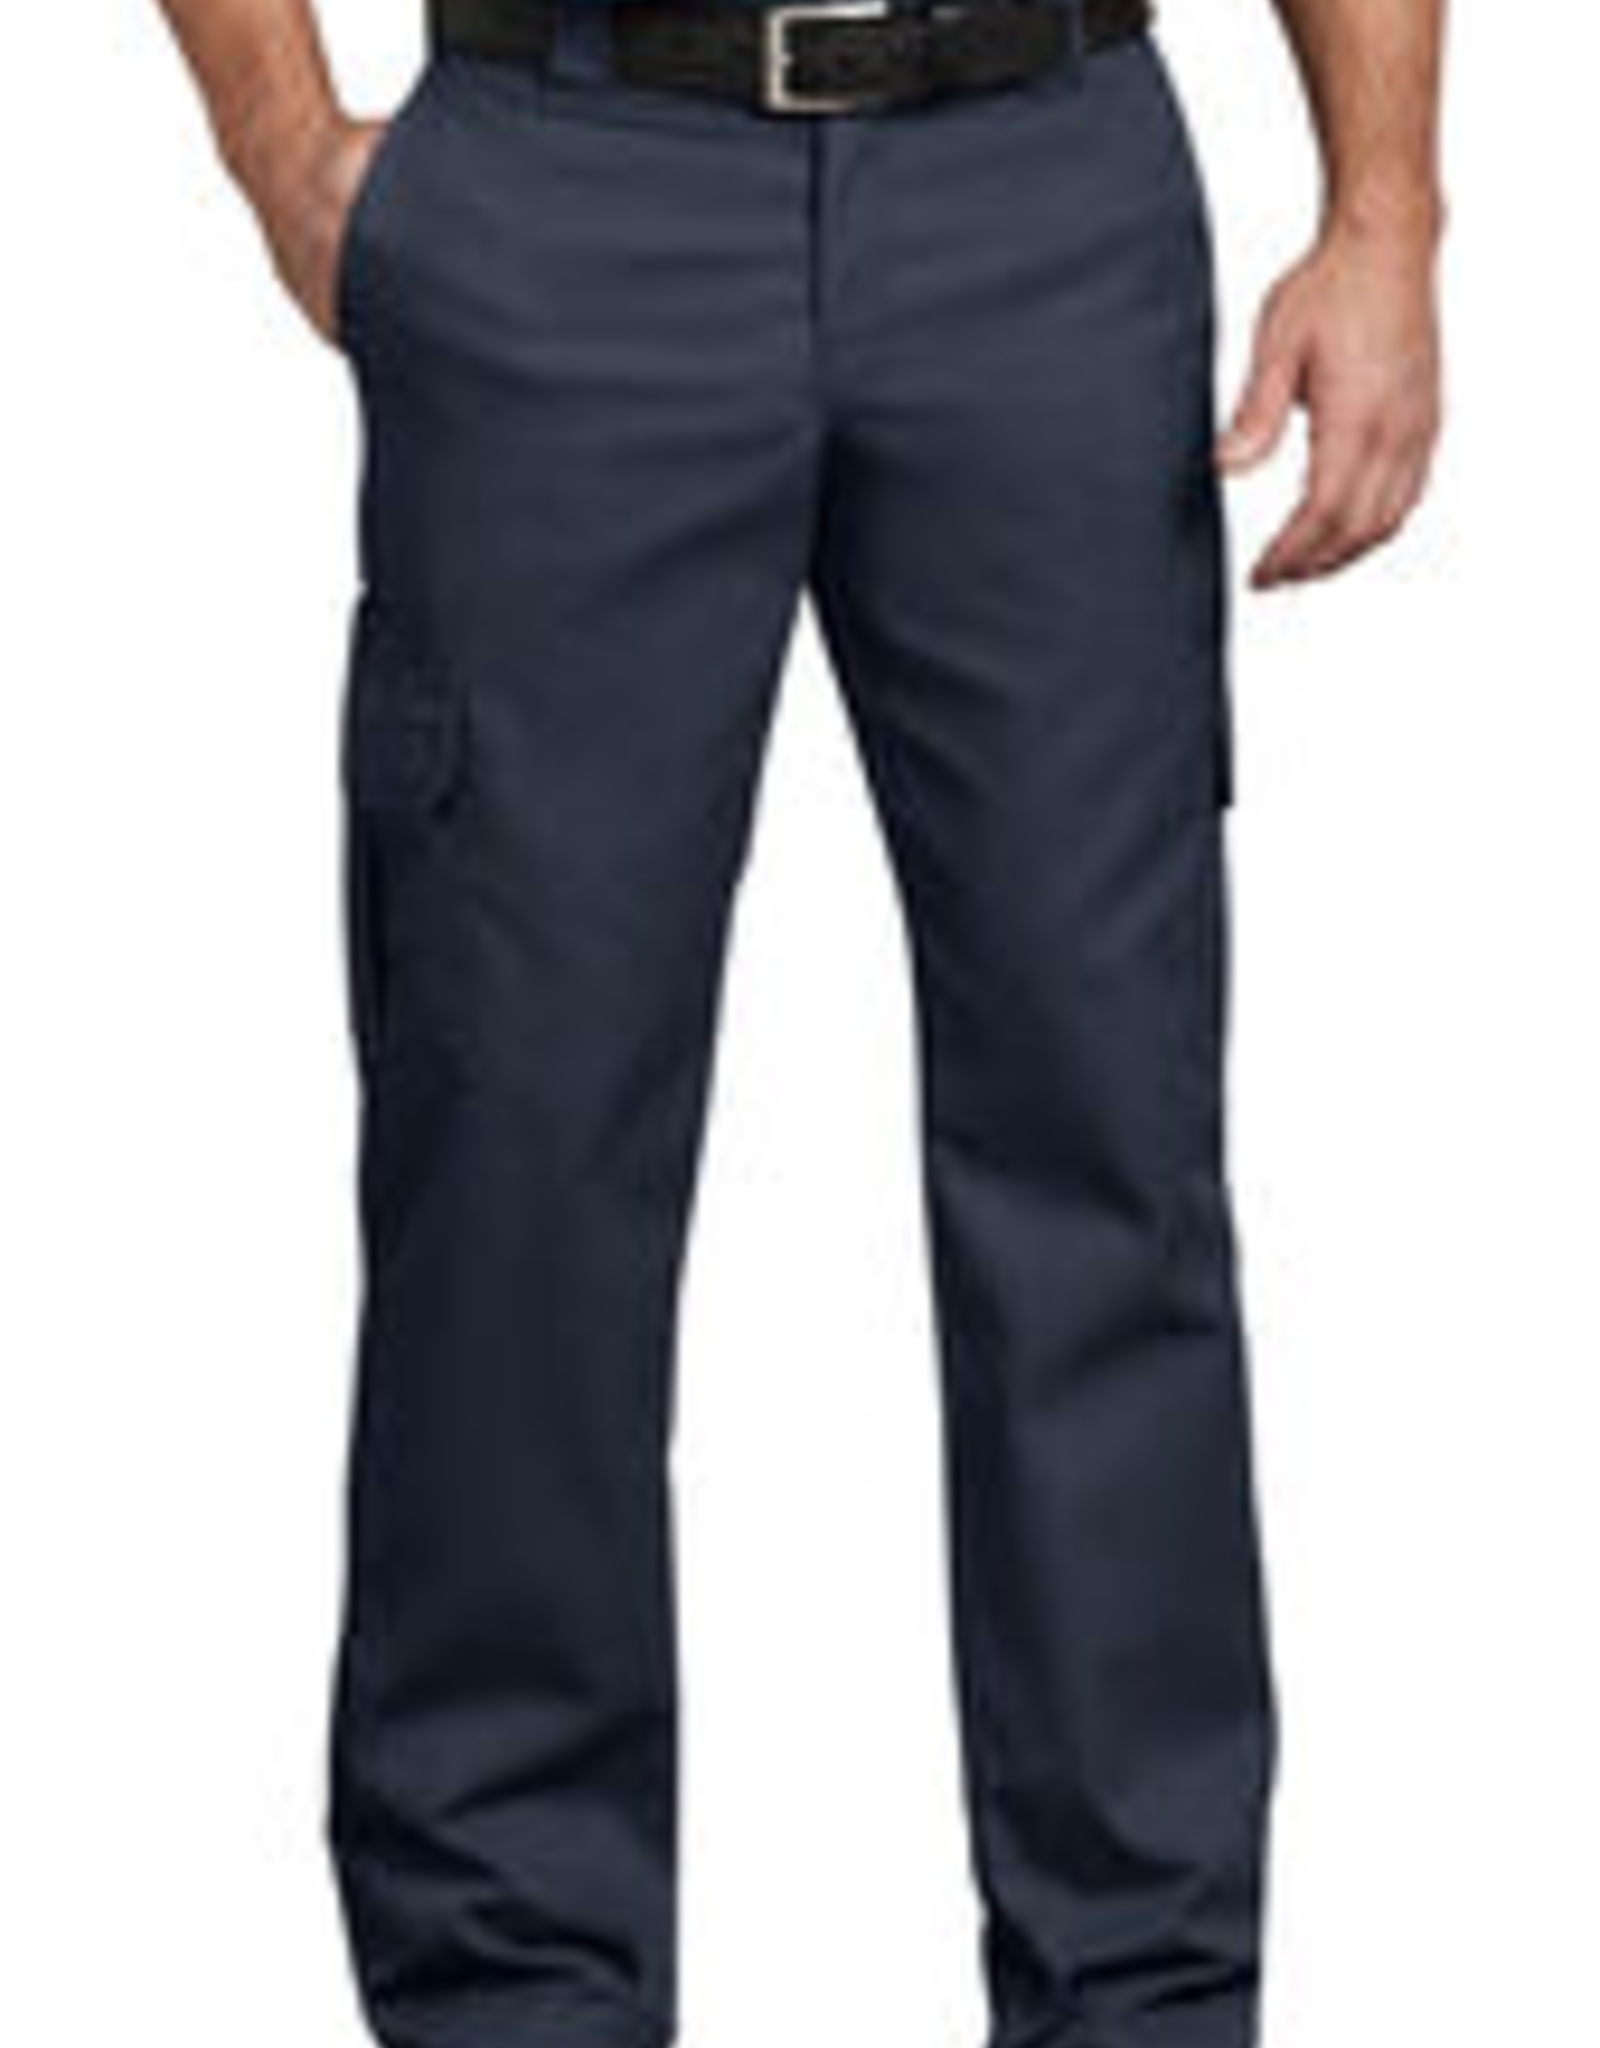 DICKIES DICKIES FLEX REGULAR FIT STRAIGHT LEG CARGO PANTy of DICKIES FLEX REGULAR FIT STRAIGHT LEG CARGO PANT